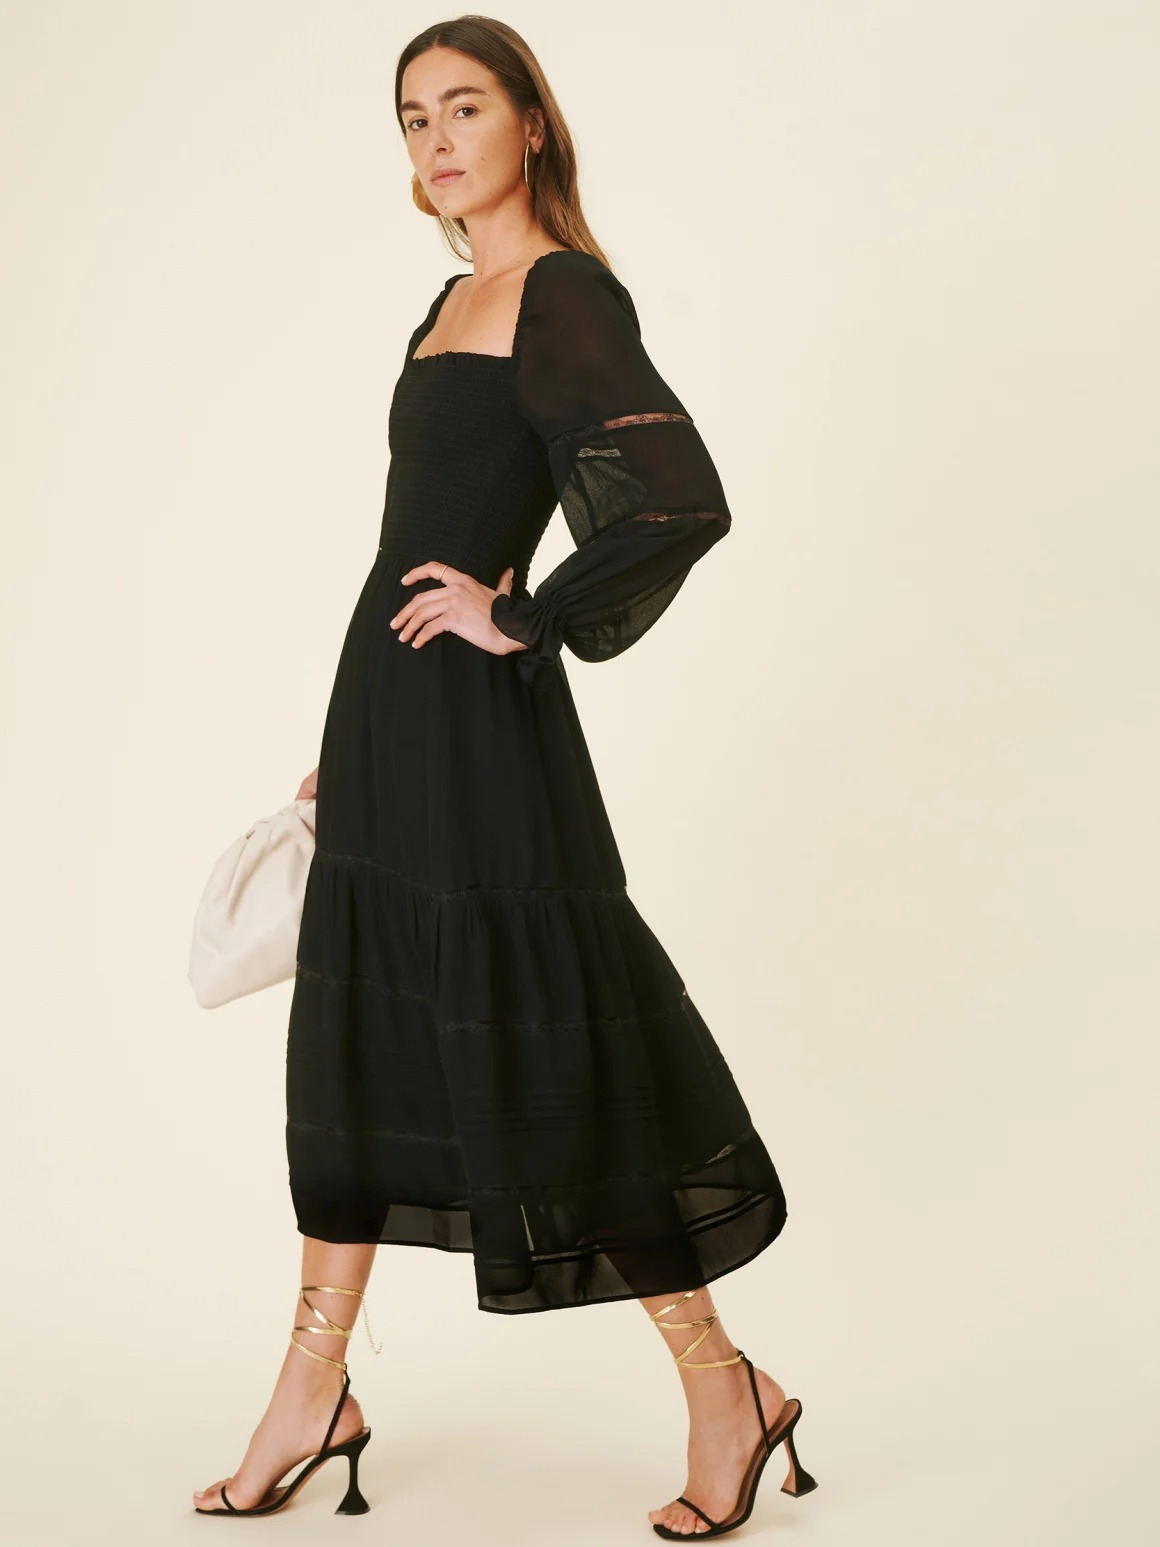 short black wedding dress with long puff sleeves from the Reformation